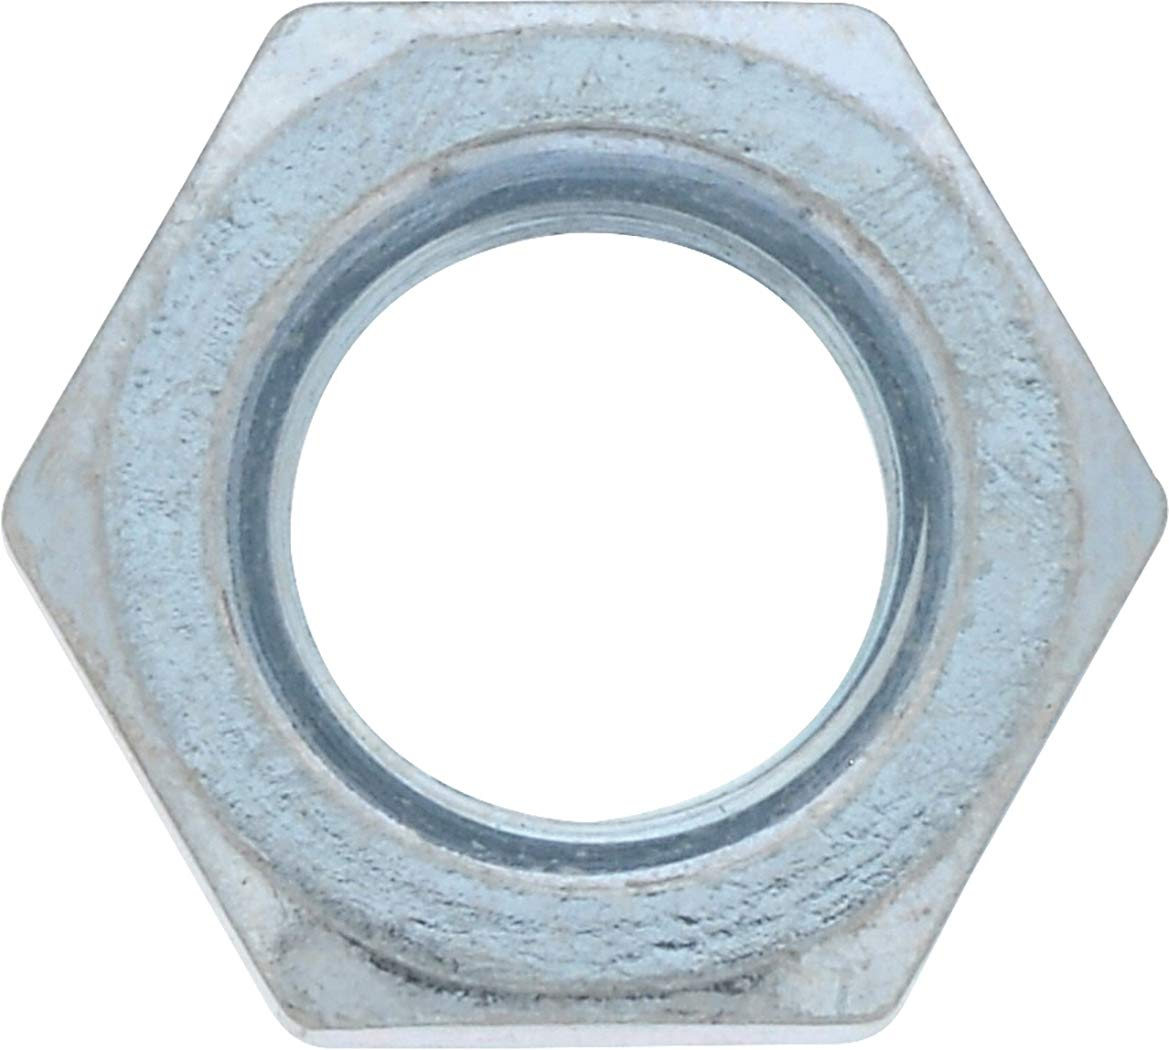 100-Pack The Hillman Group 5//16 X 24-Inch Hillman 150051 Fine Thread Finish Hex Nuts